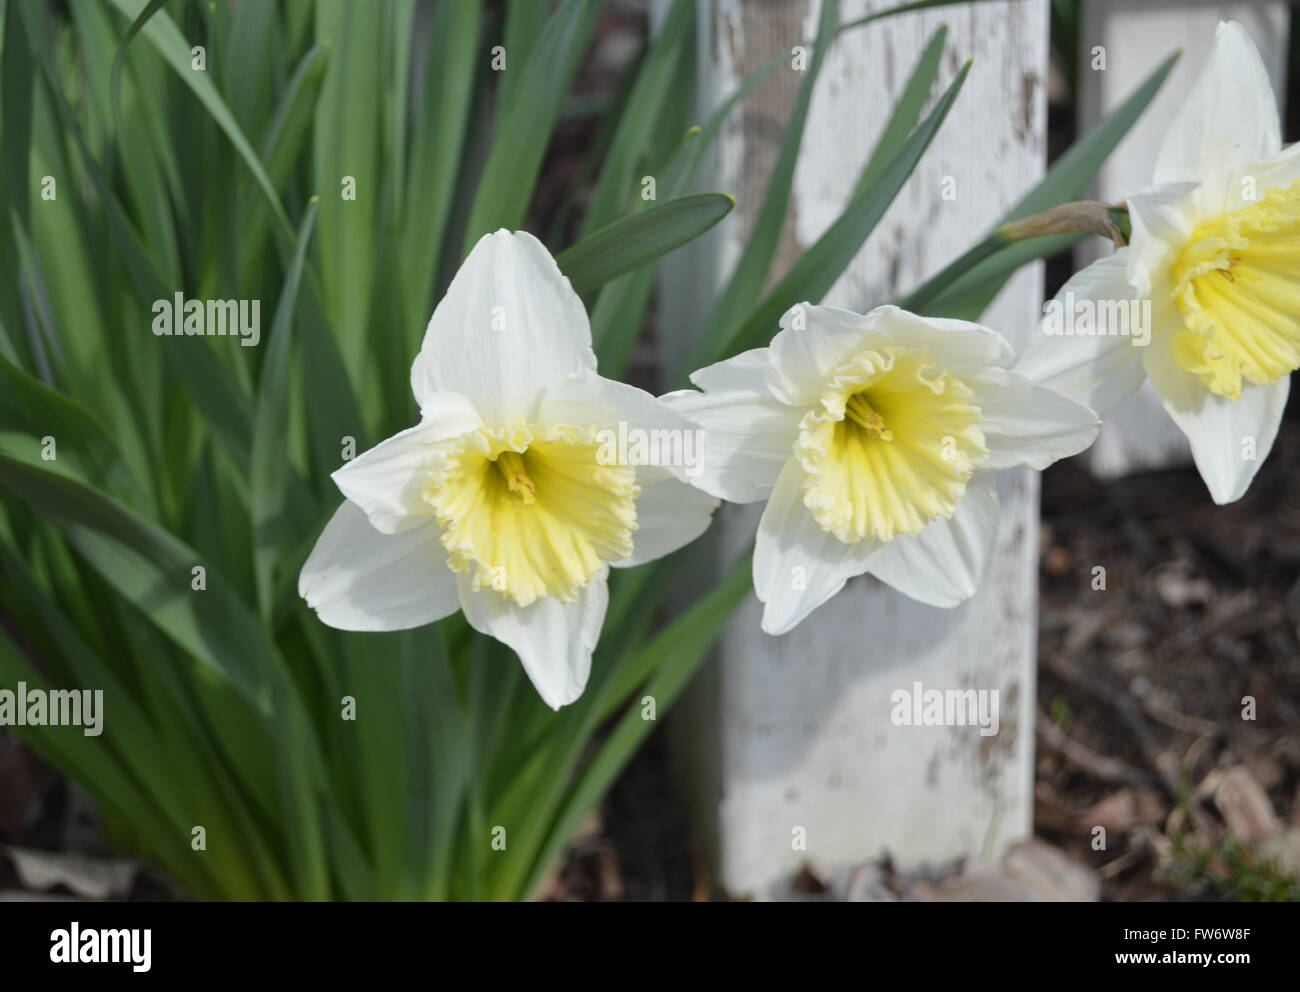 A picture of three fully bloomed white daffodils with a single white fence post in the background. - Stock Image